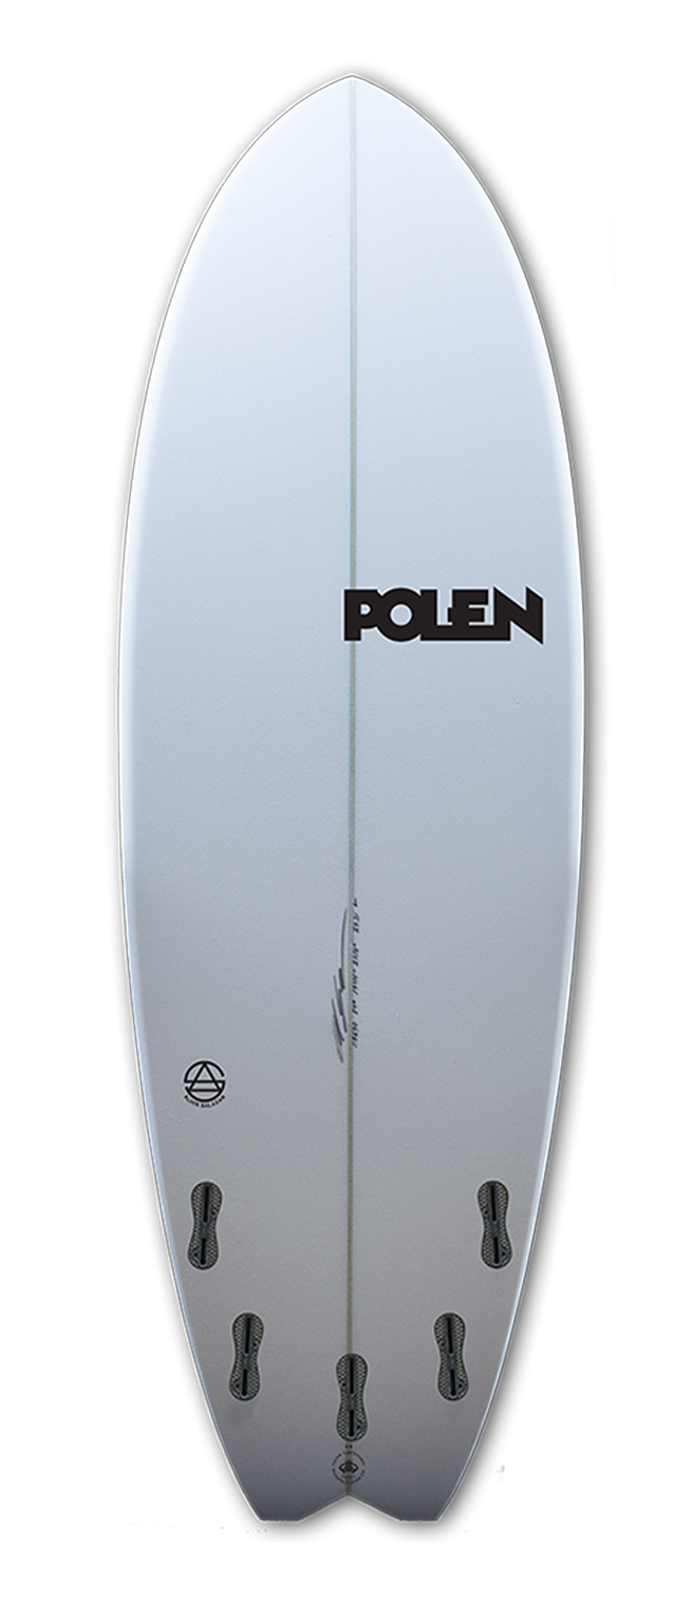 SUMMER KING surfboard model bottom